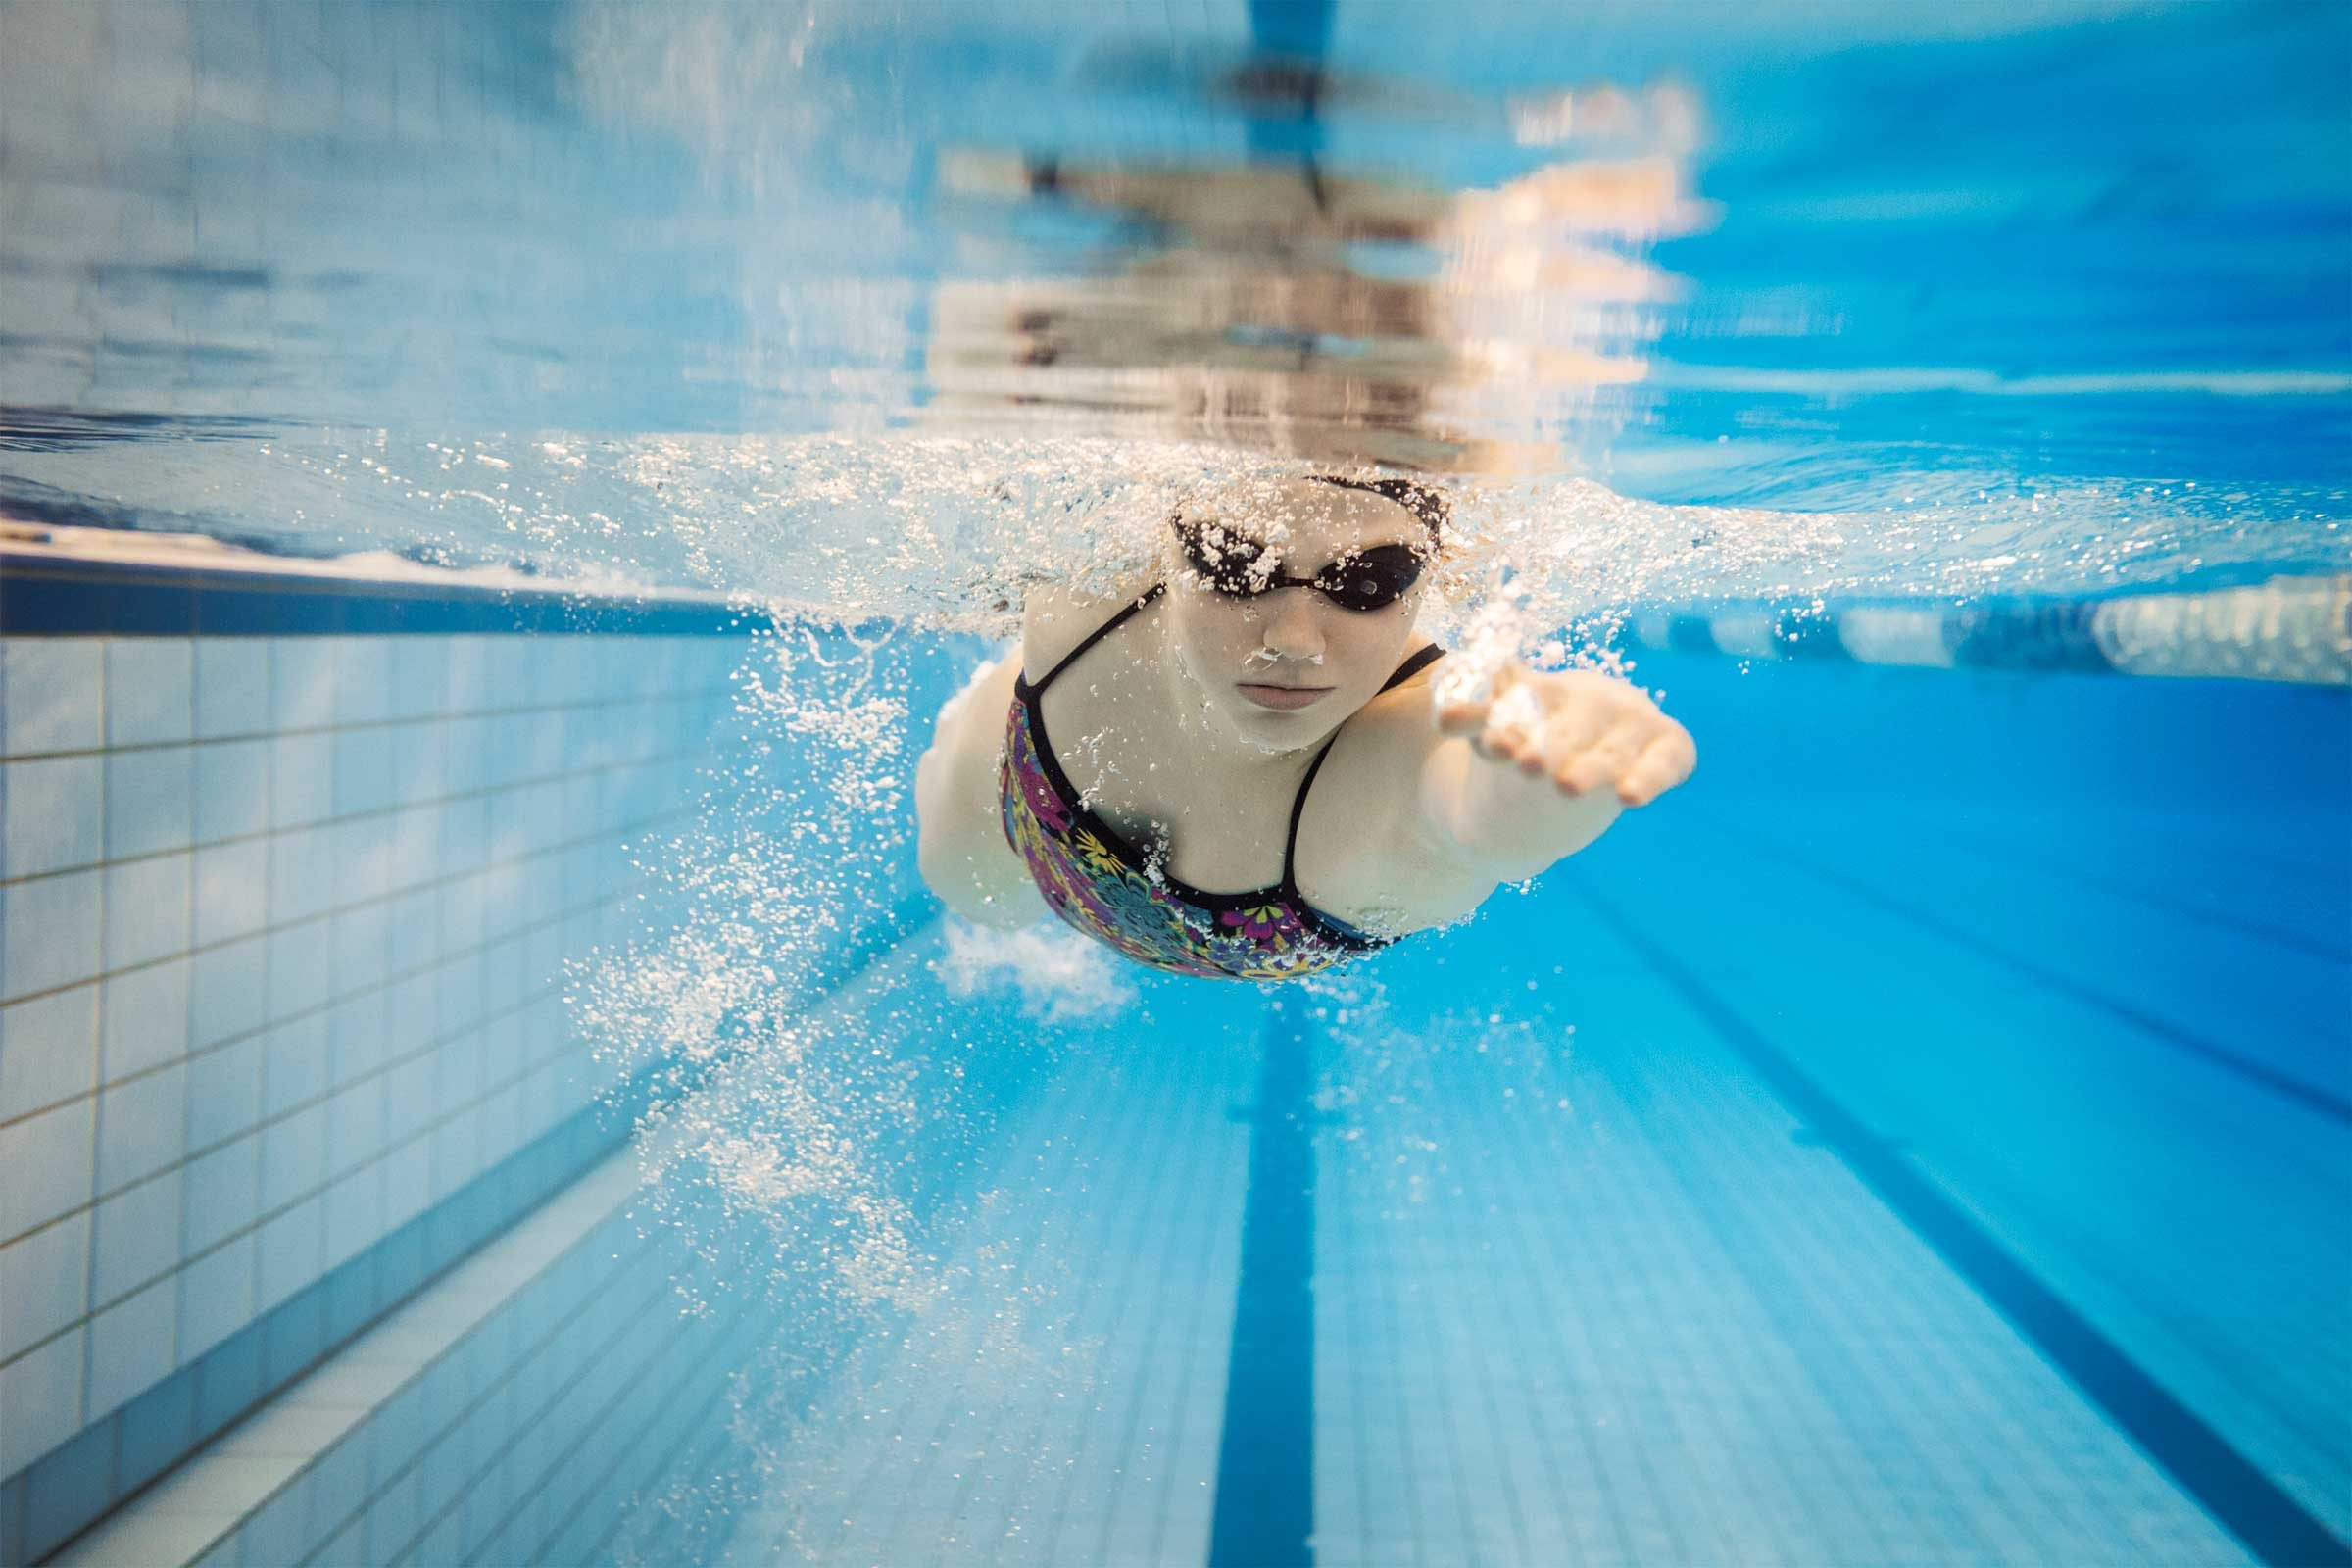 Copd exercises how to build healthier lungs reader 39 s digest for How to care for a swimming pool